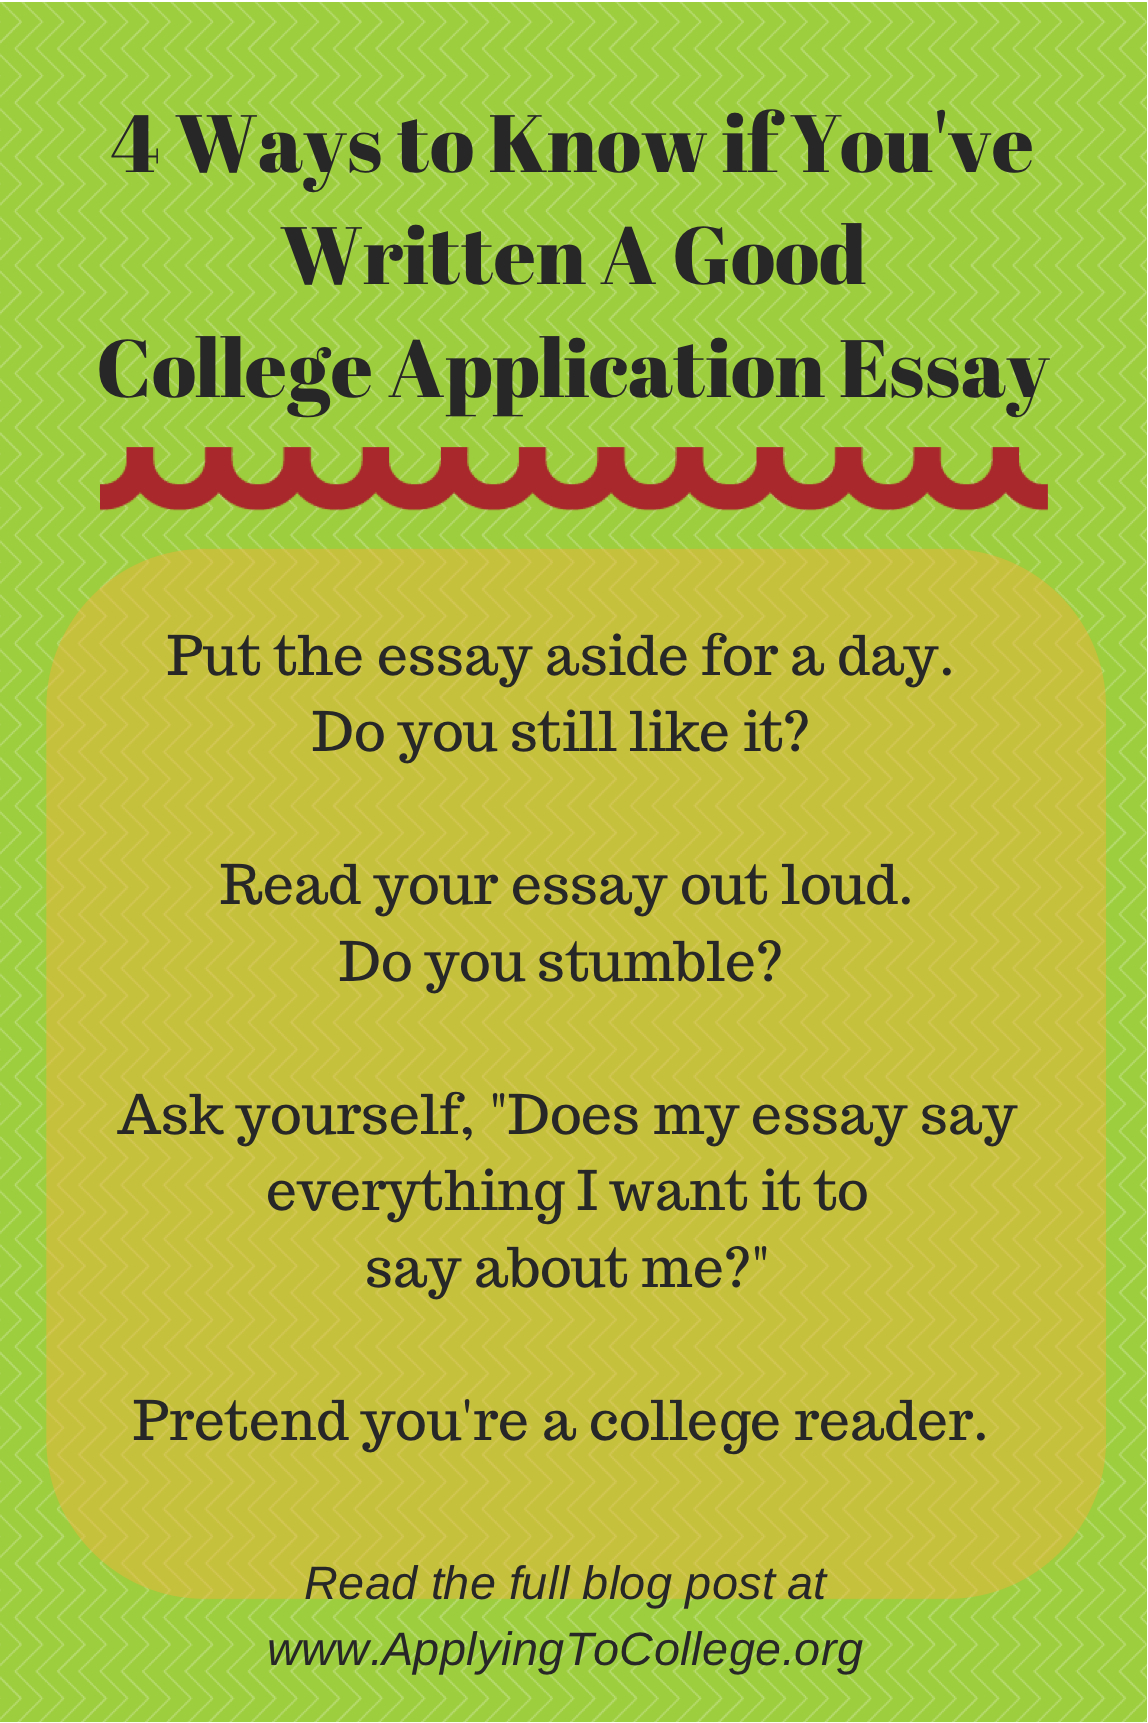 application essay prompts samples college application essay prompts samples